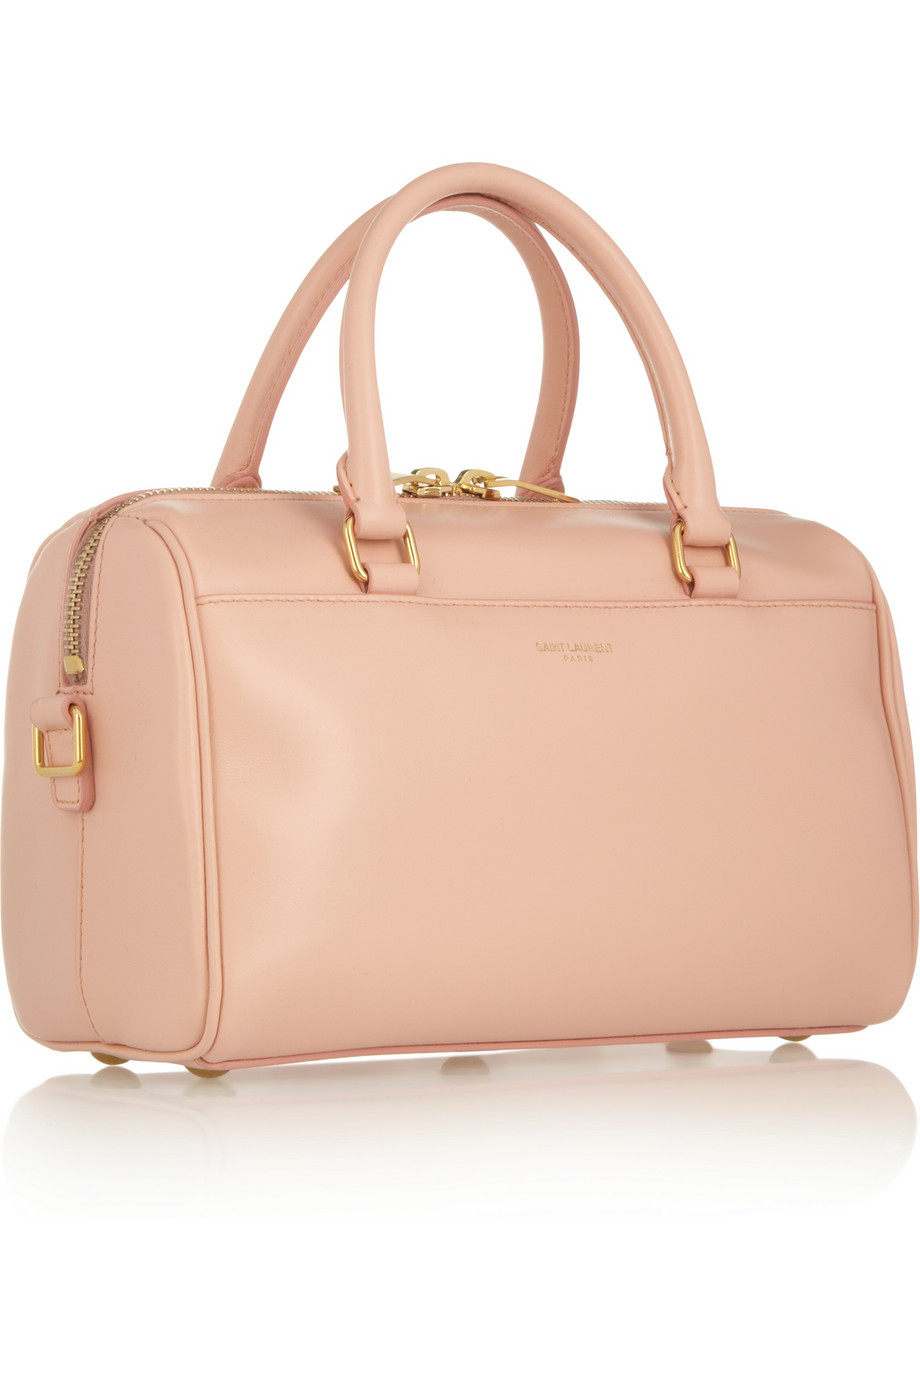 Lyst - Saint Laurent Classic Duffle 3 Leather Bag in Pink e139326317263